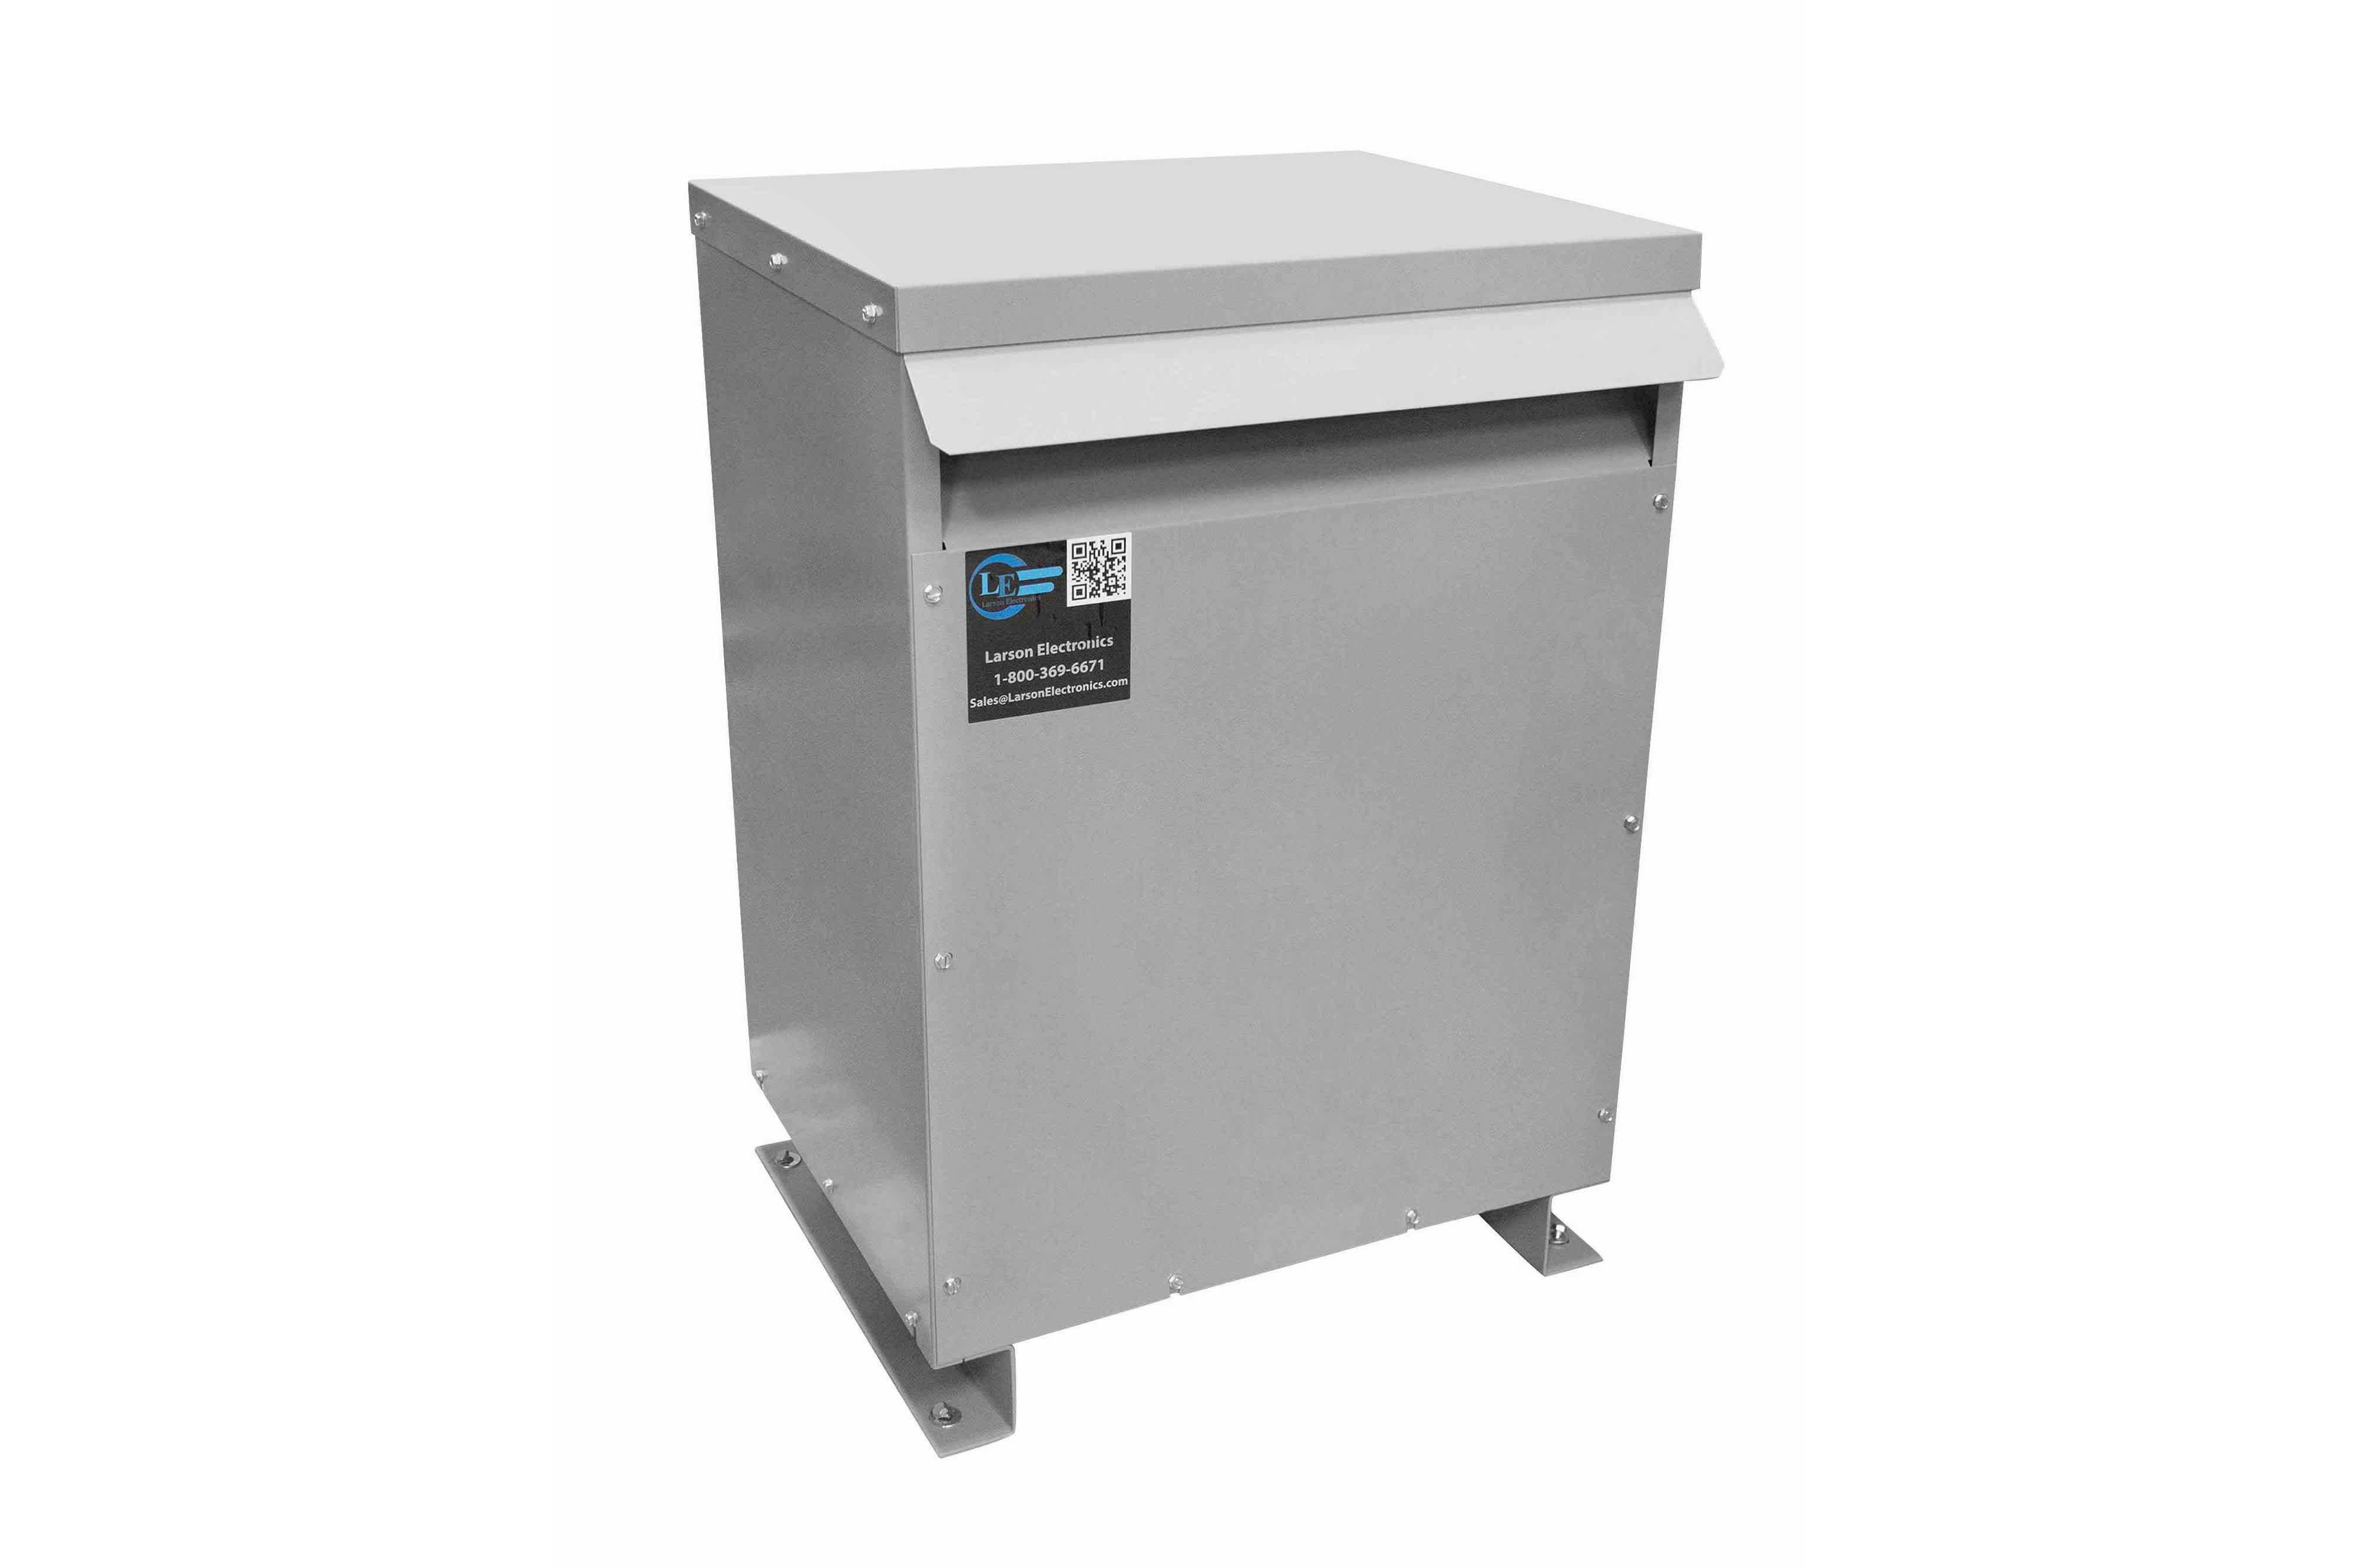 200 kVA 3PH Isolation Transformer, 415V Wye Primary, 208V Delta Secondary, N3R, Ventilated, 60 Hz